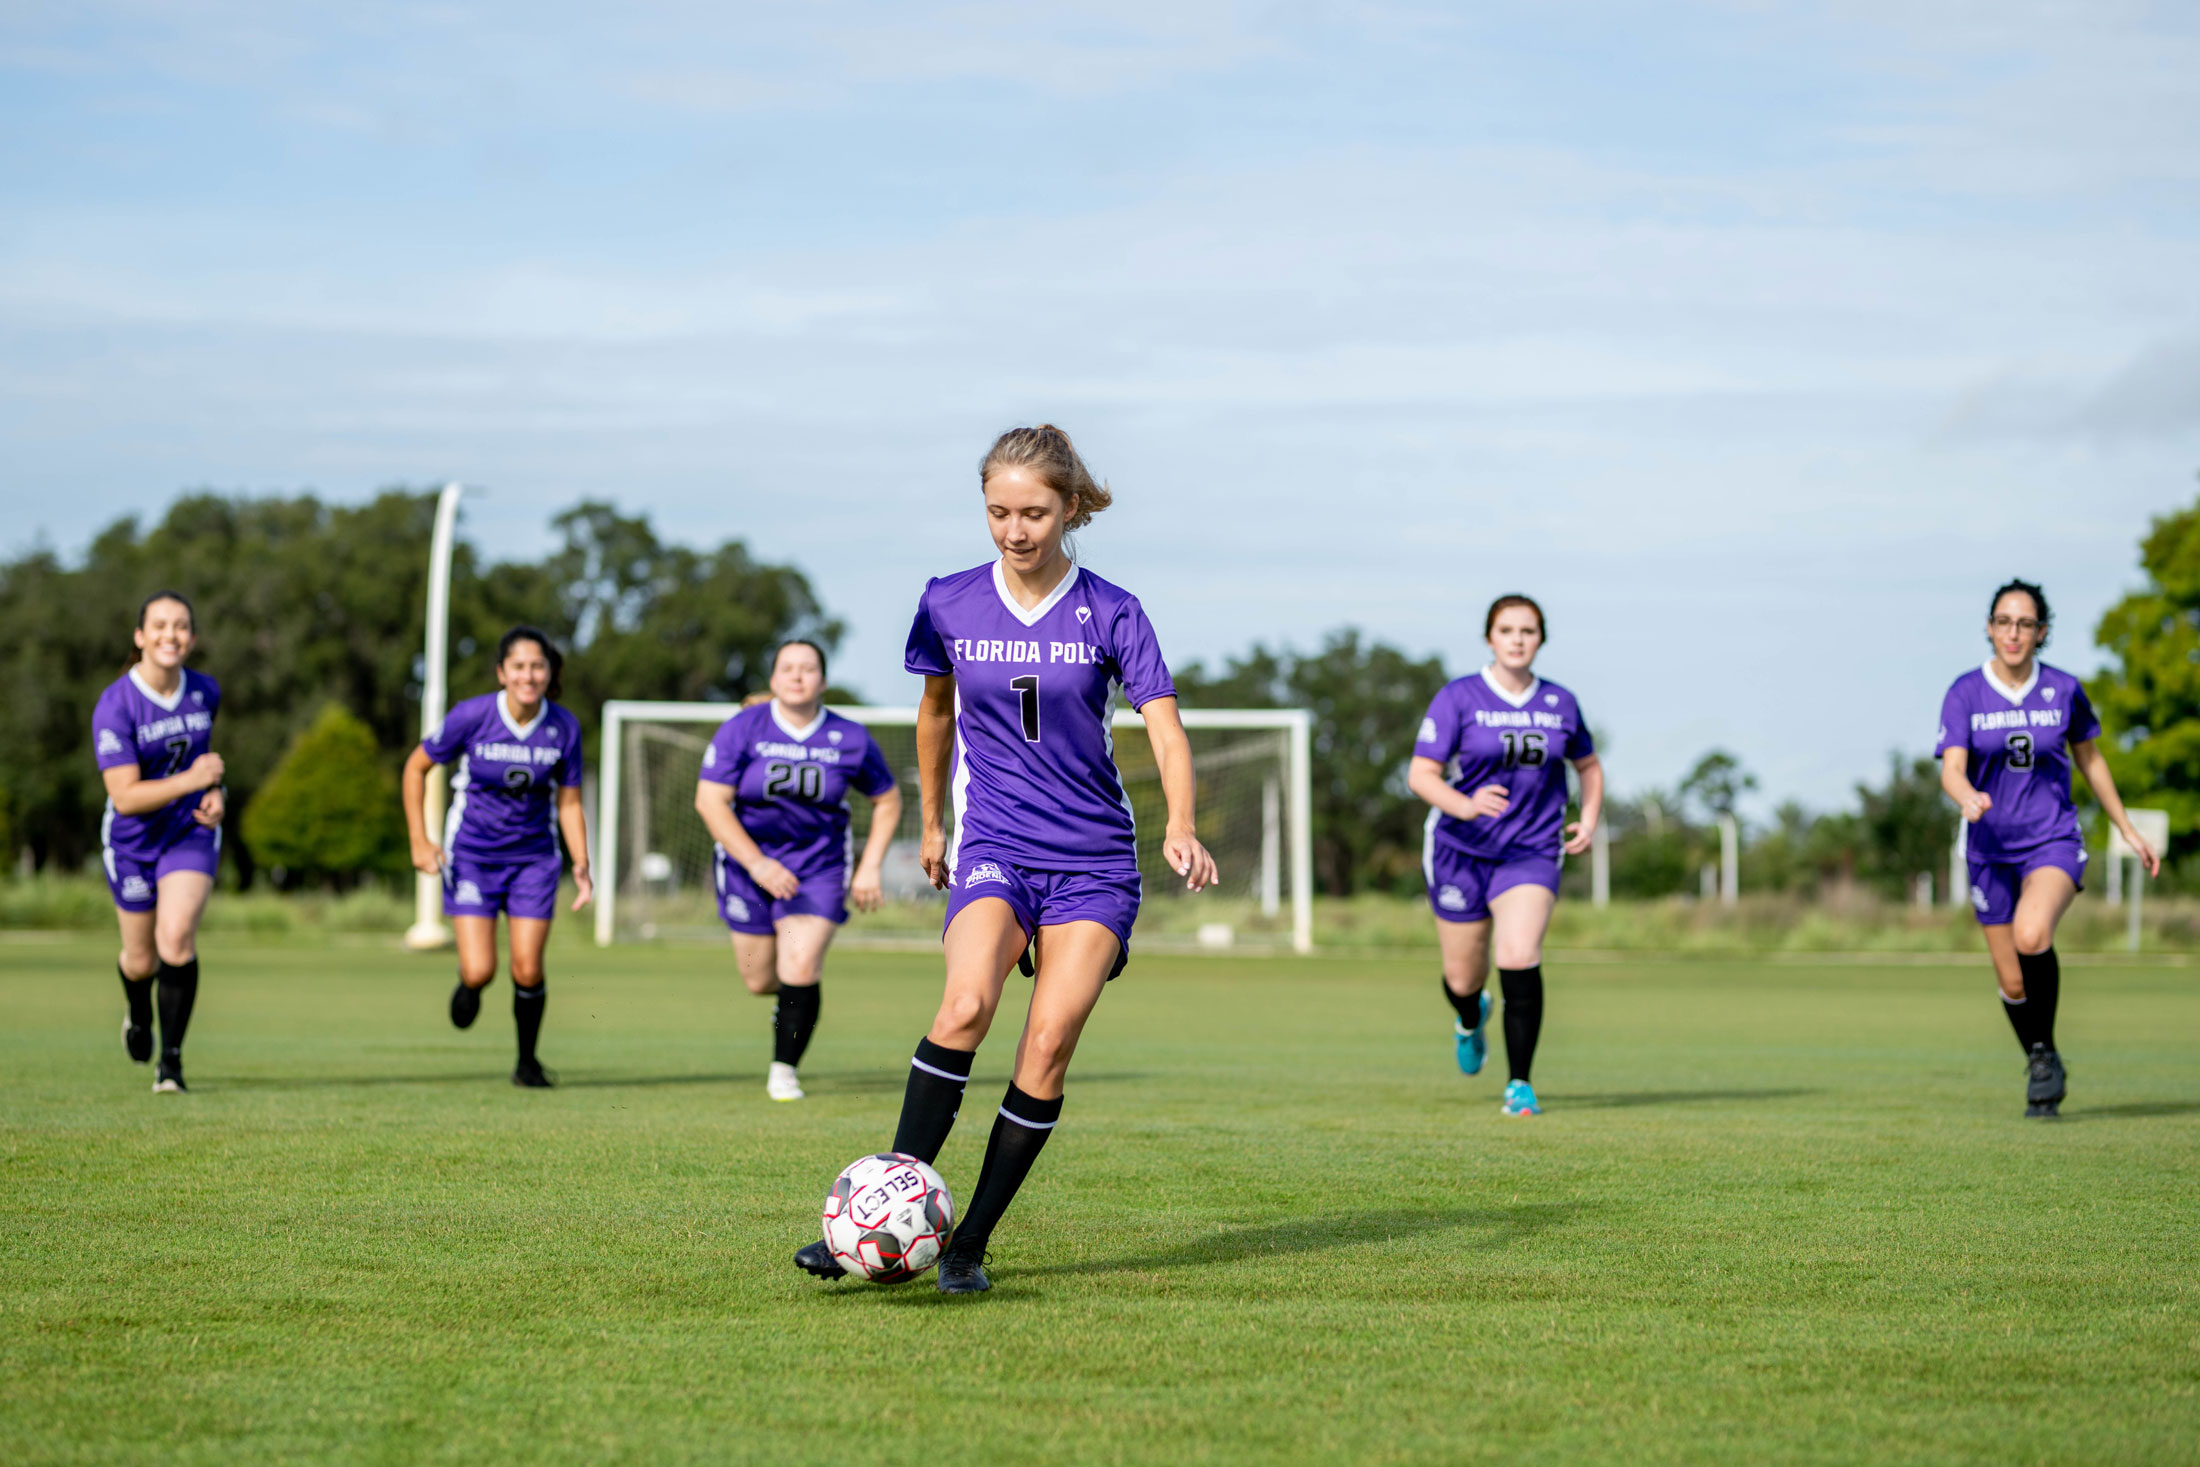 Florida Poly launches new Women's Club Soccer team